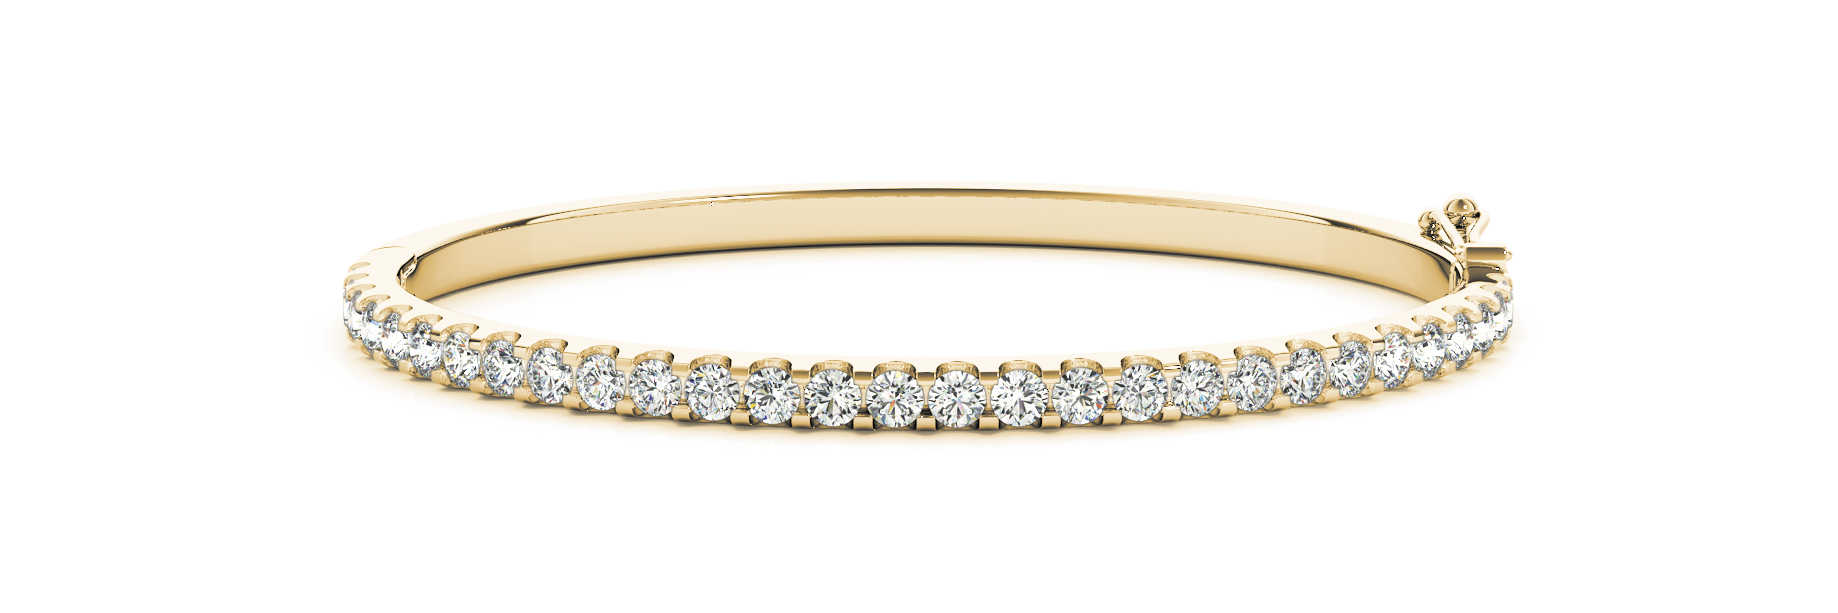 1.8 Carat Round Diamond Bangle in Yellow Gold